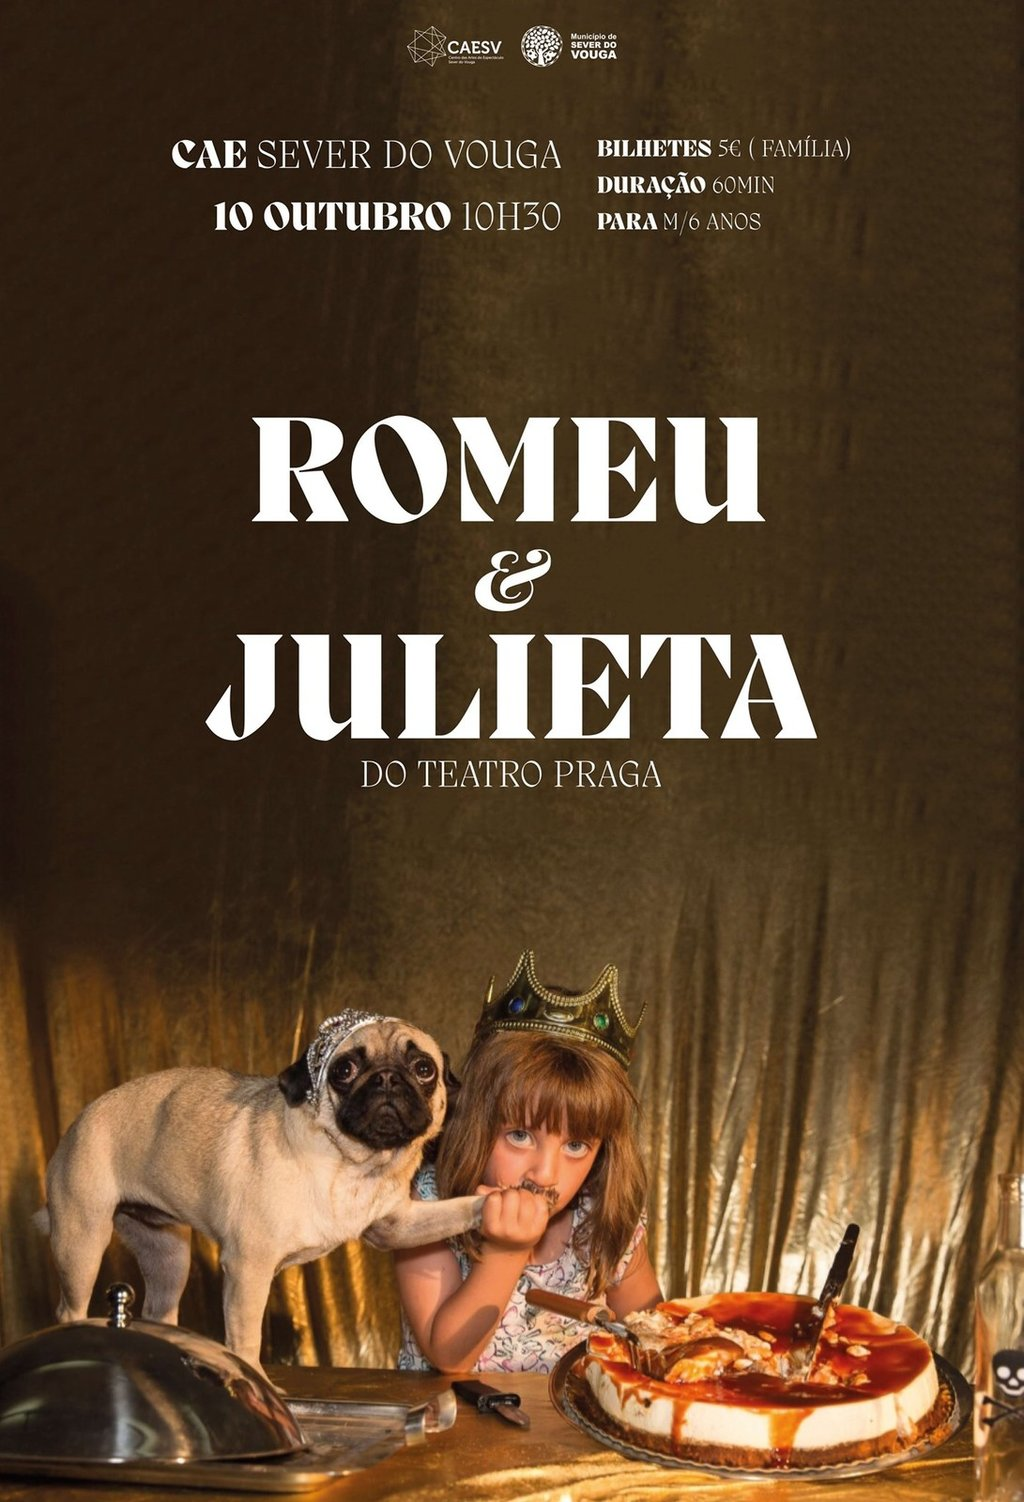 Dia 10 Out - CAE - Romeu e Julieta